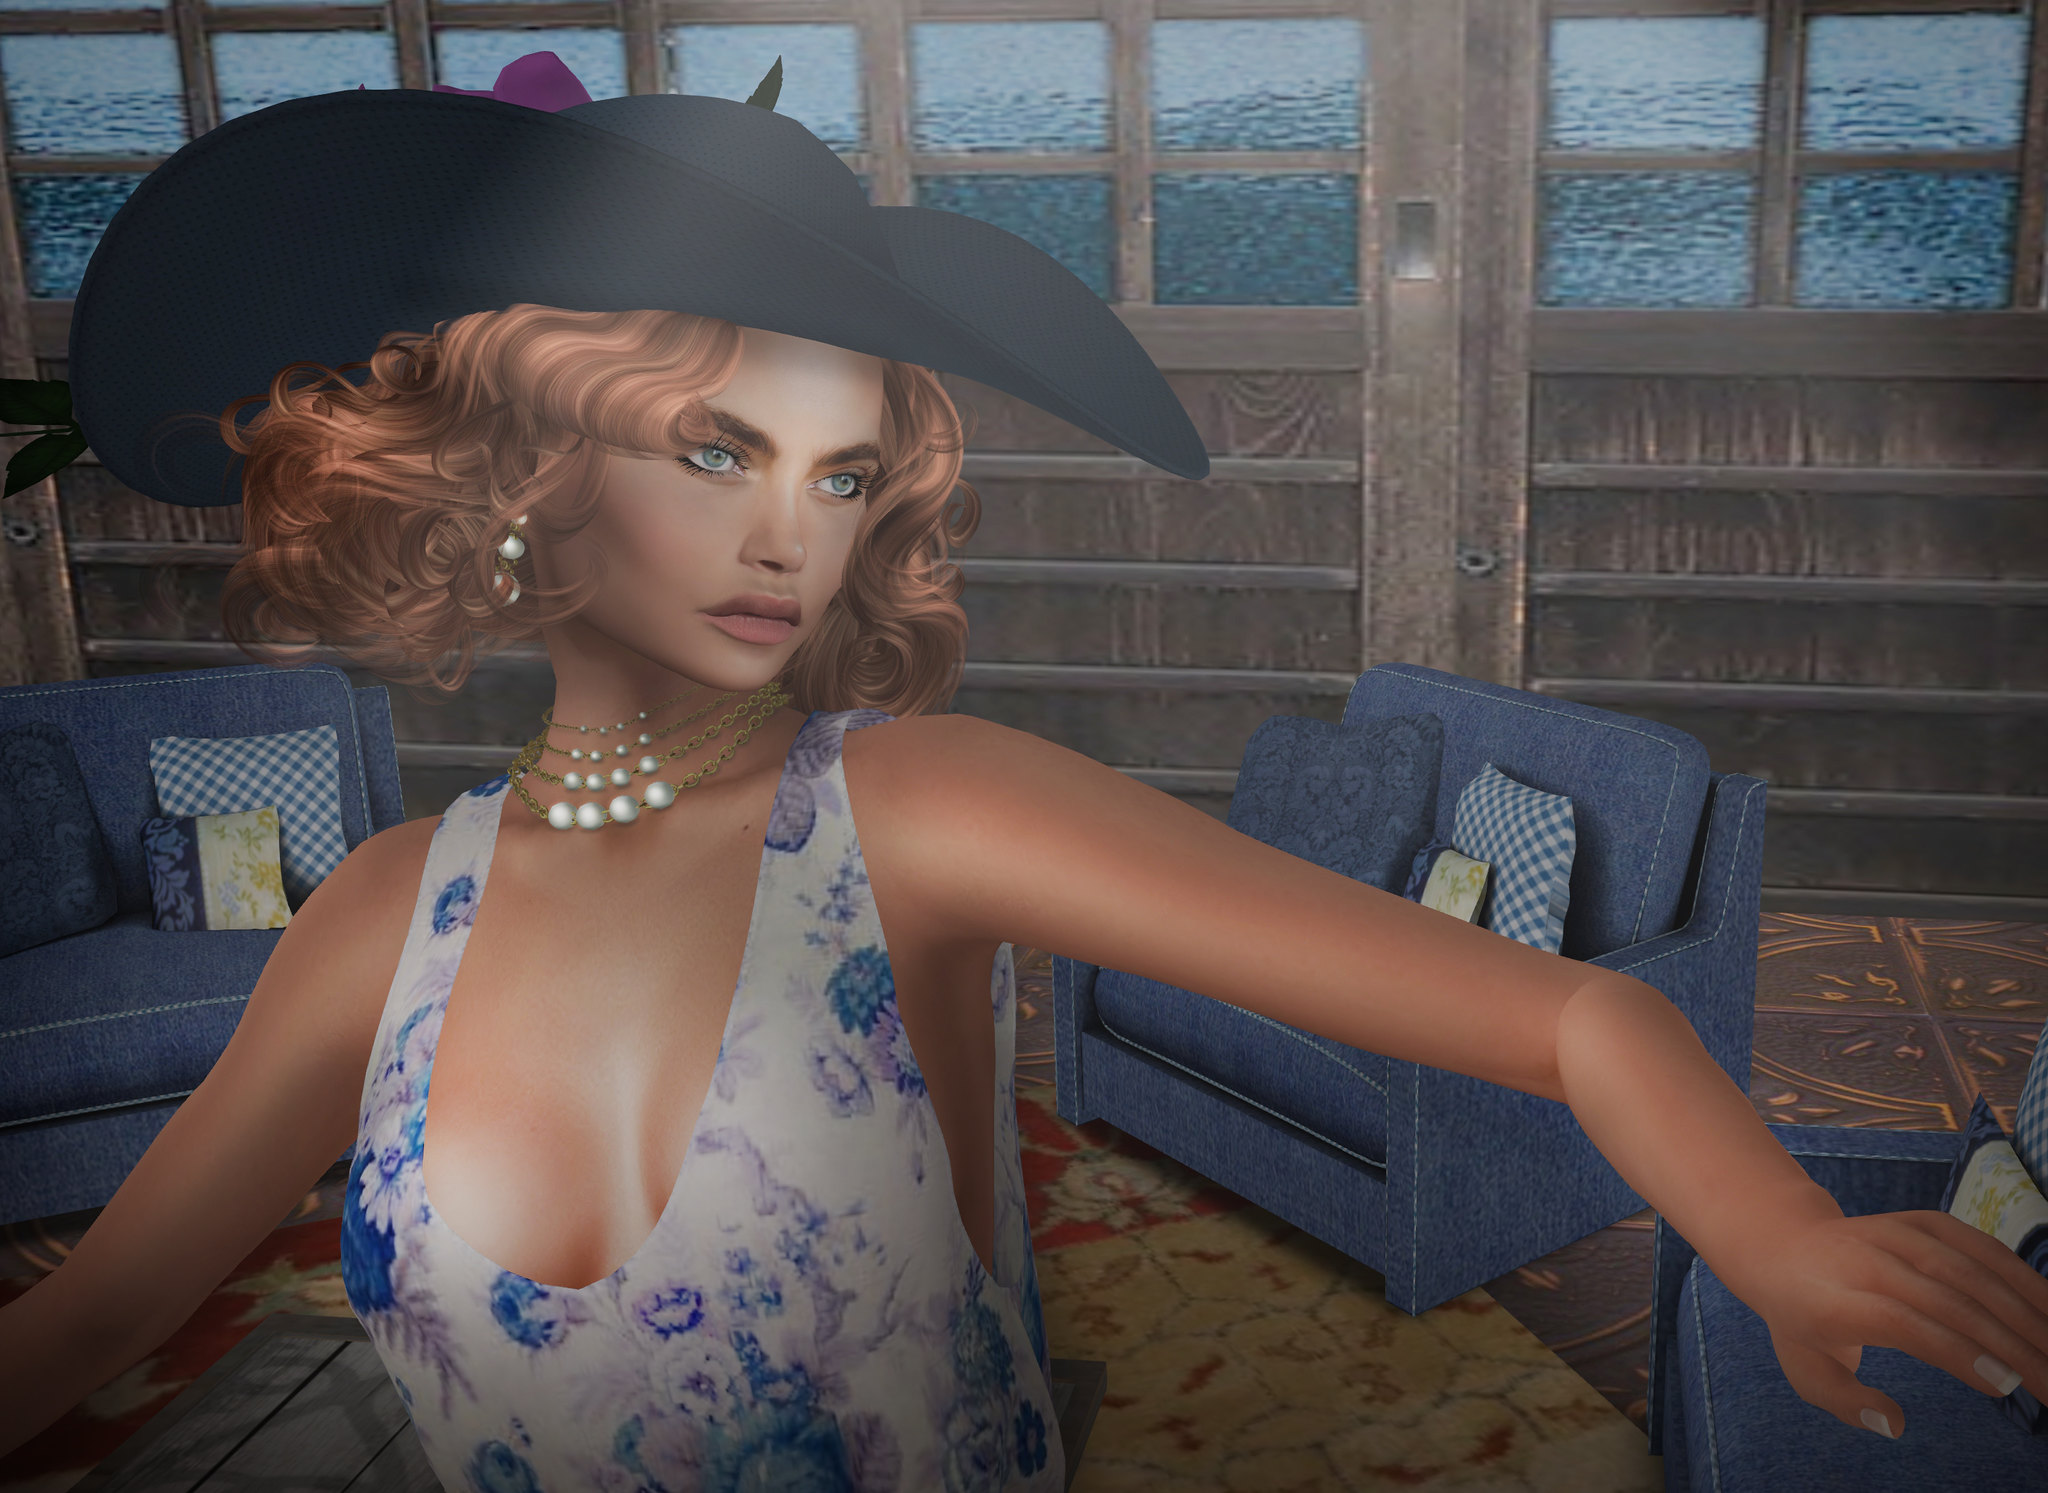 NEW!!! The Vintage Touch at SWANK EVENT / .:EMO-tions:. at HAIR FAIR